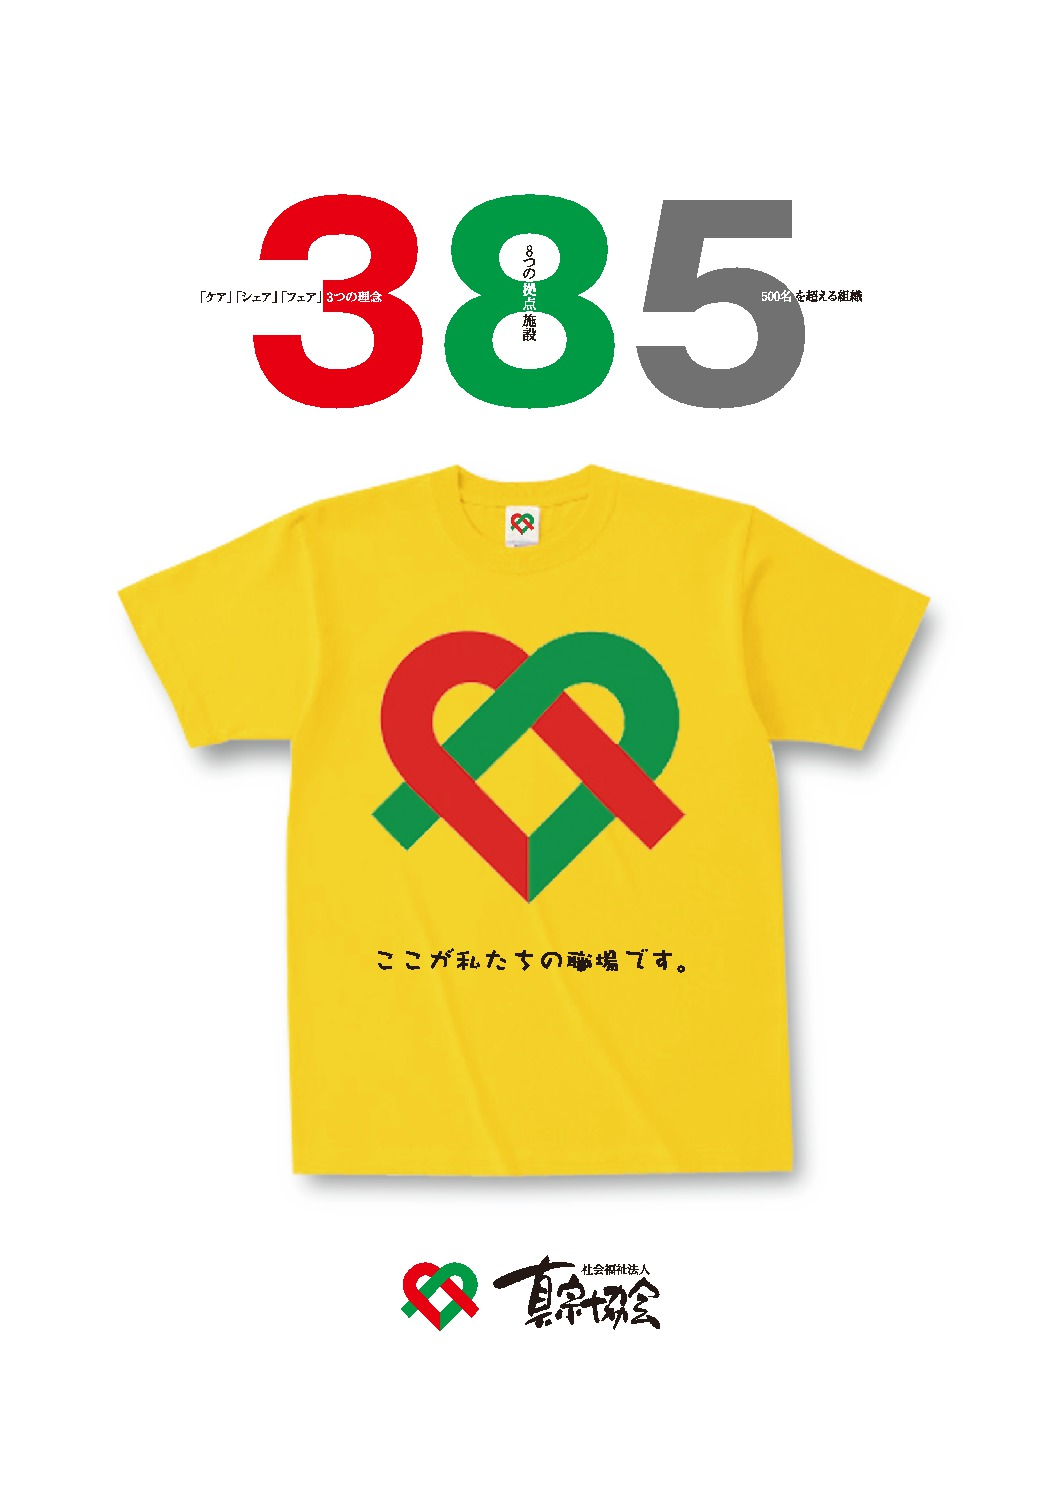 「385」Panf omote 1のサムネイル